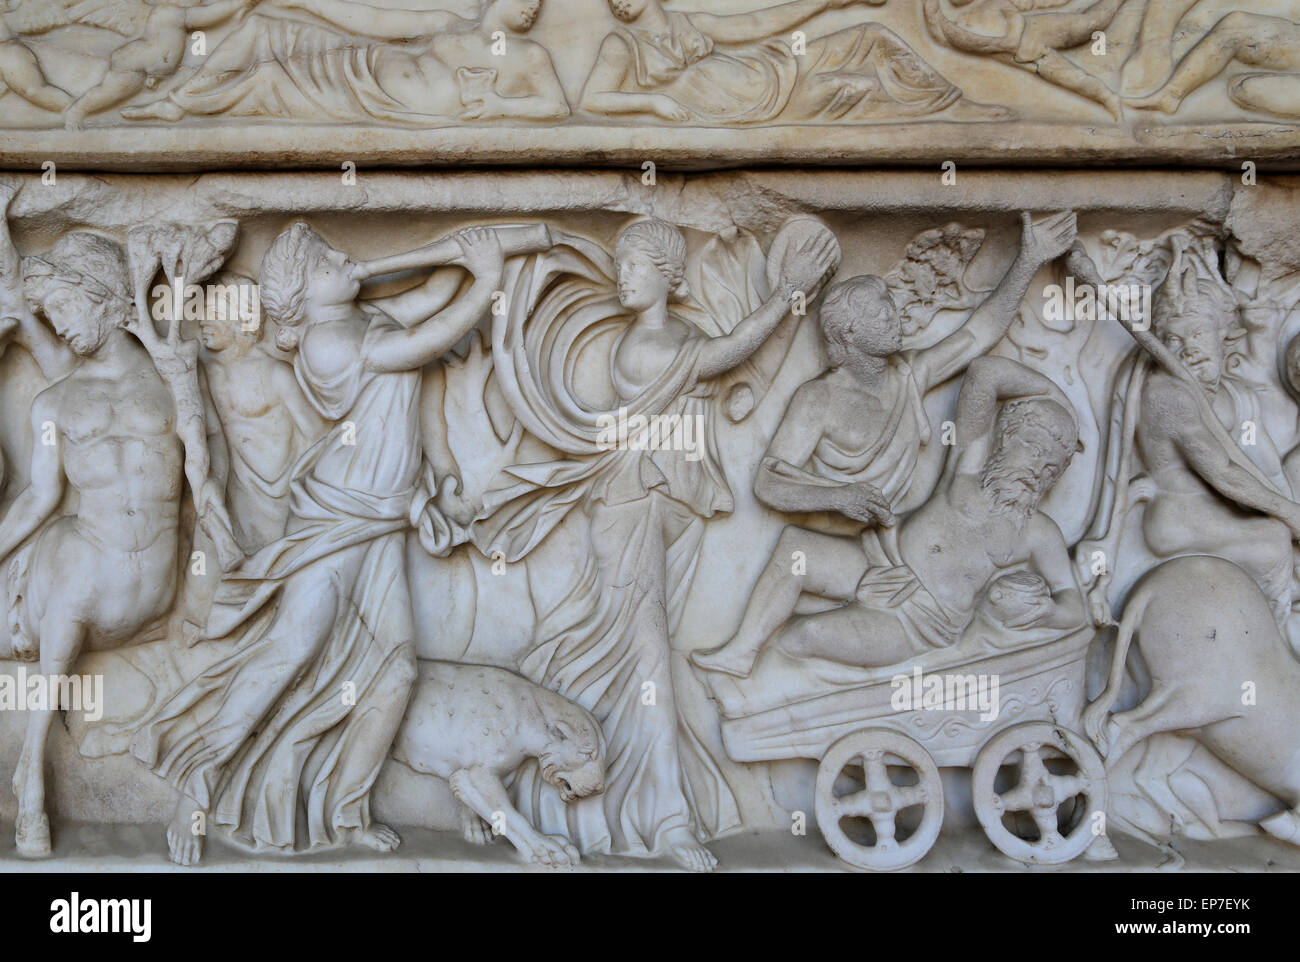 Sarcophagus with Dionysiac ceremonial procession. 2nd century AD. Roman. Italy. - Stock Image